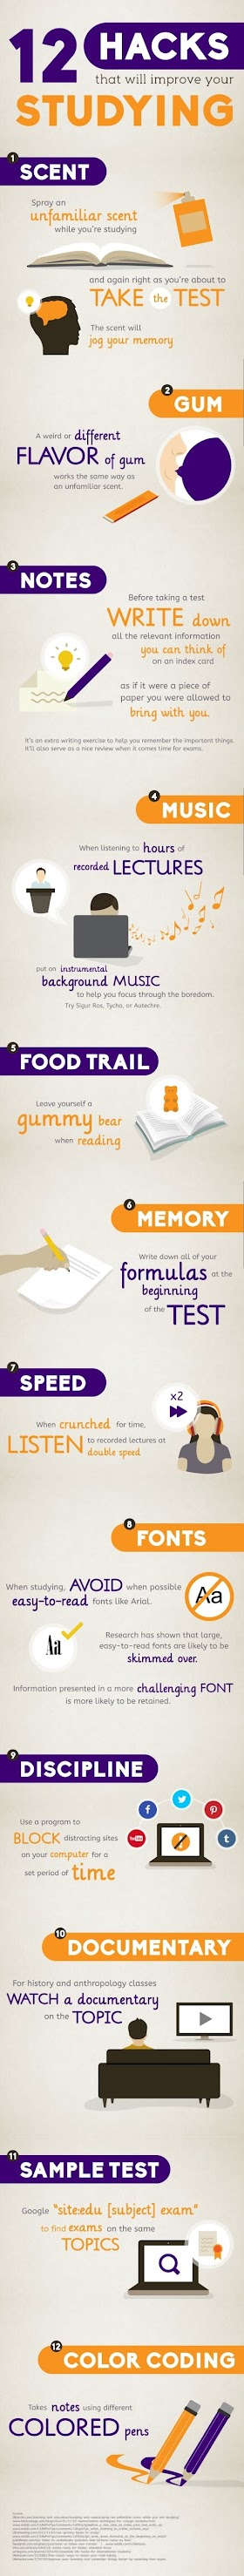 How to improve your Studying Infographic